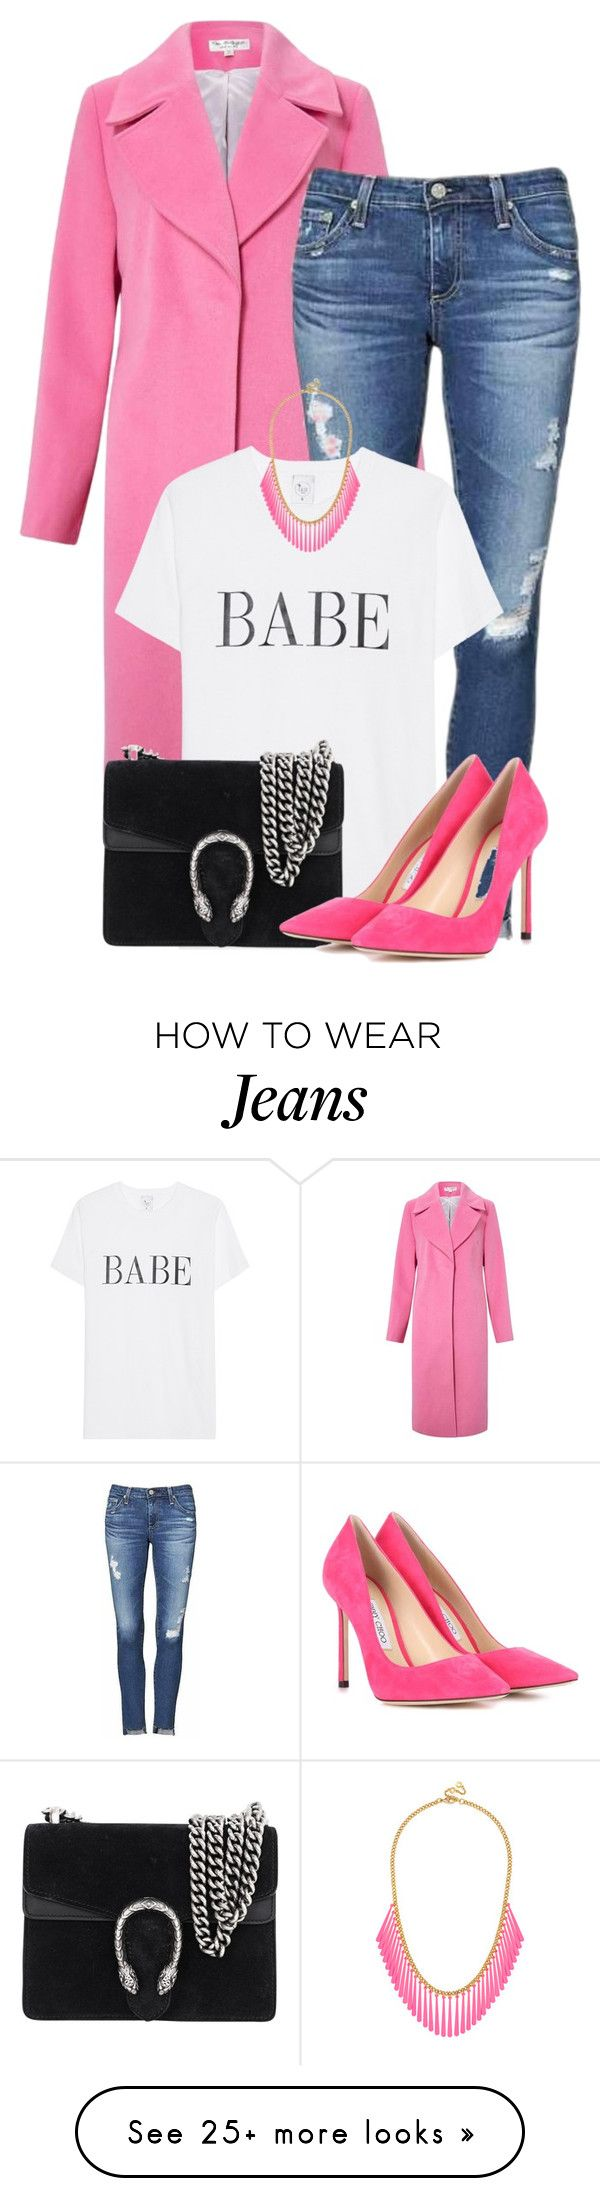 """""""Senza titolo #3612"""" by sally92 on Polyvore featuring Miss Selfridge, AG Adriano Goldschmied, Gucci, Jimmy Choo, BaubleBar and onlyset"""